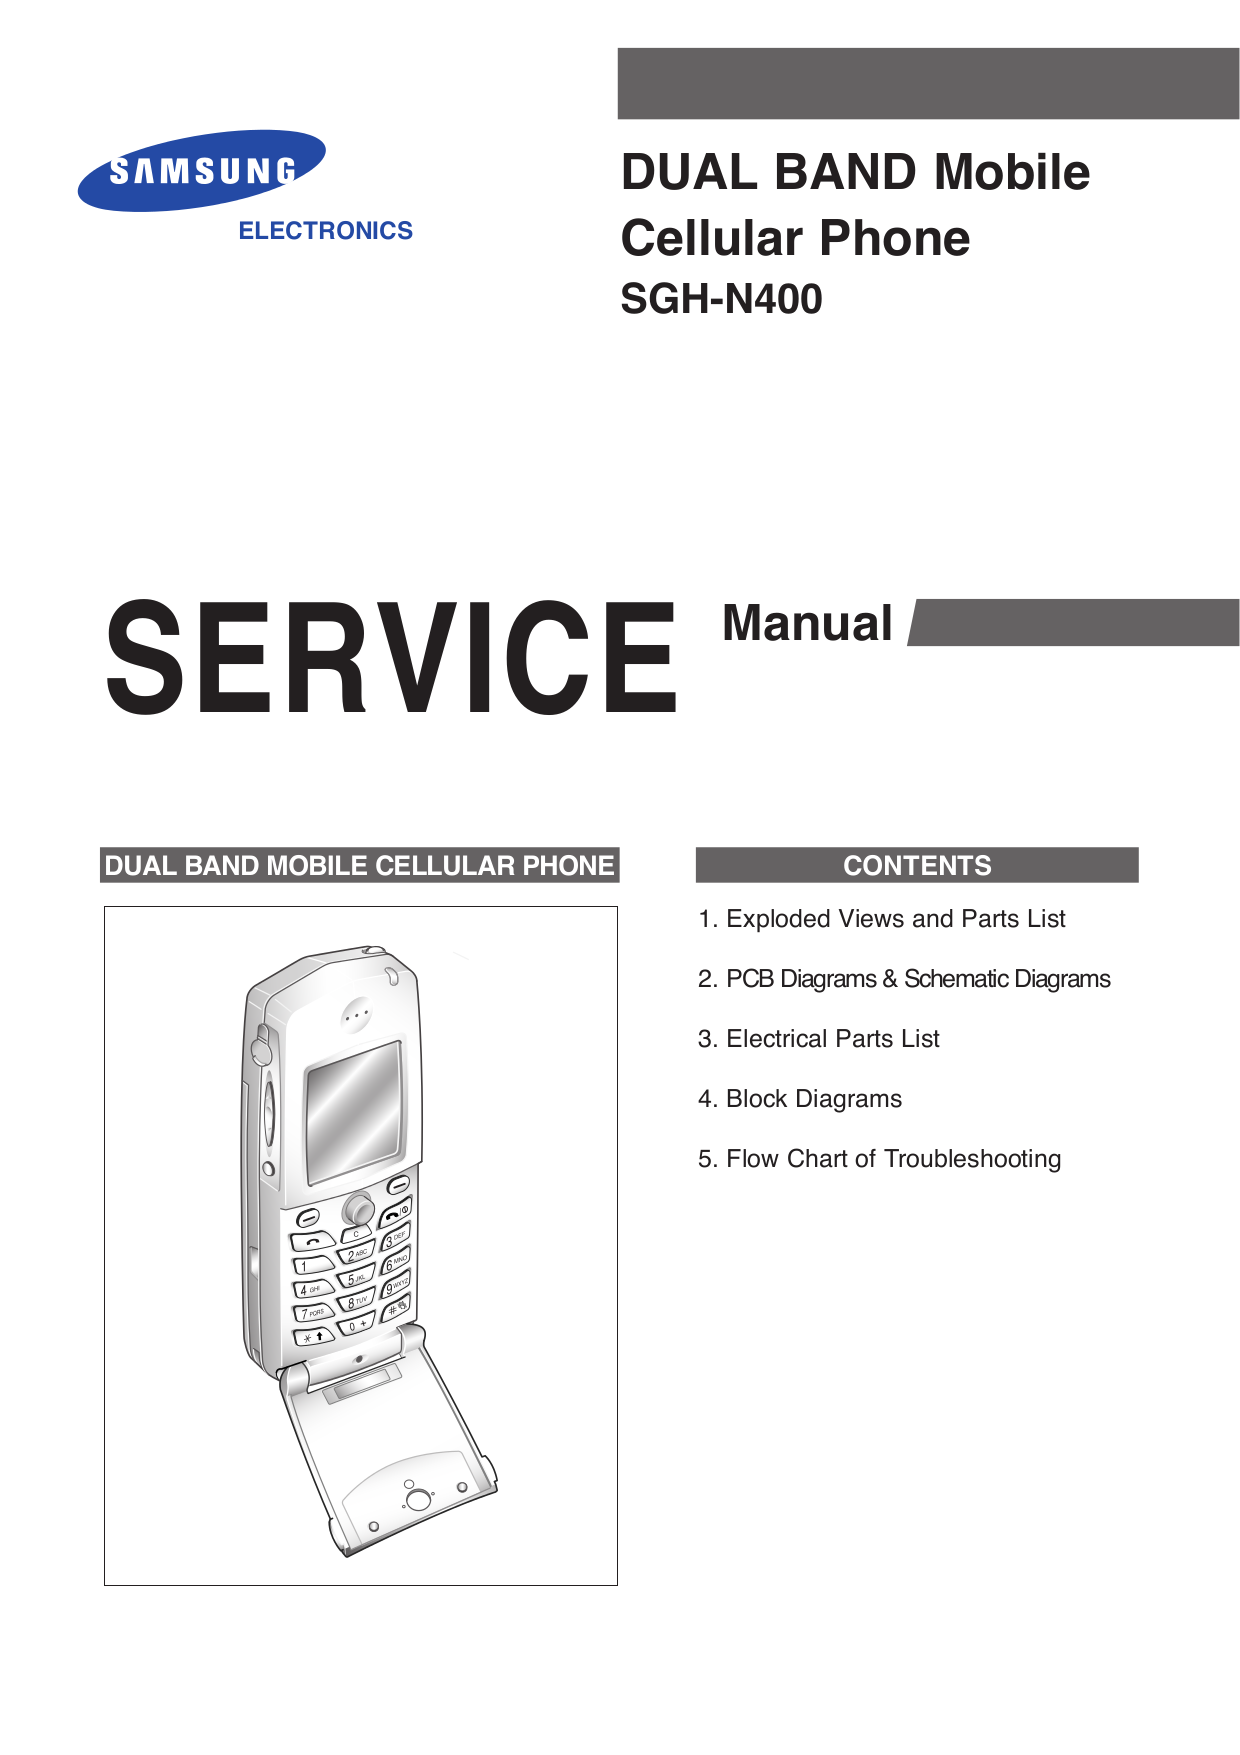 pdf manual for samsung cell phone sgh